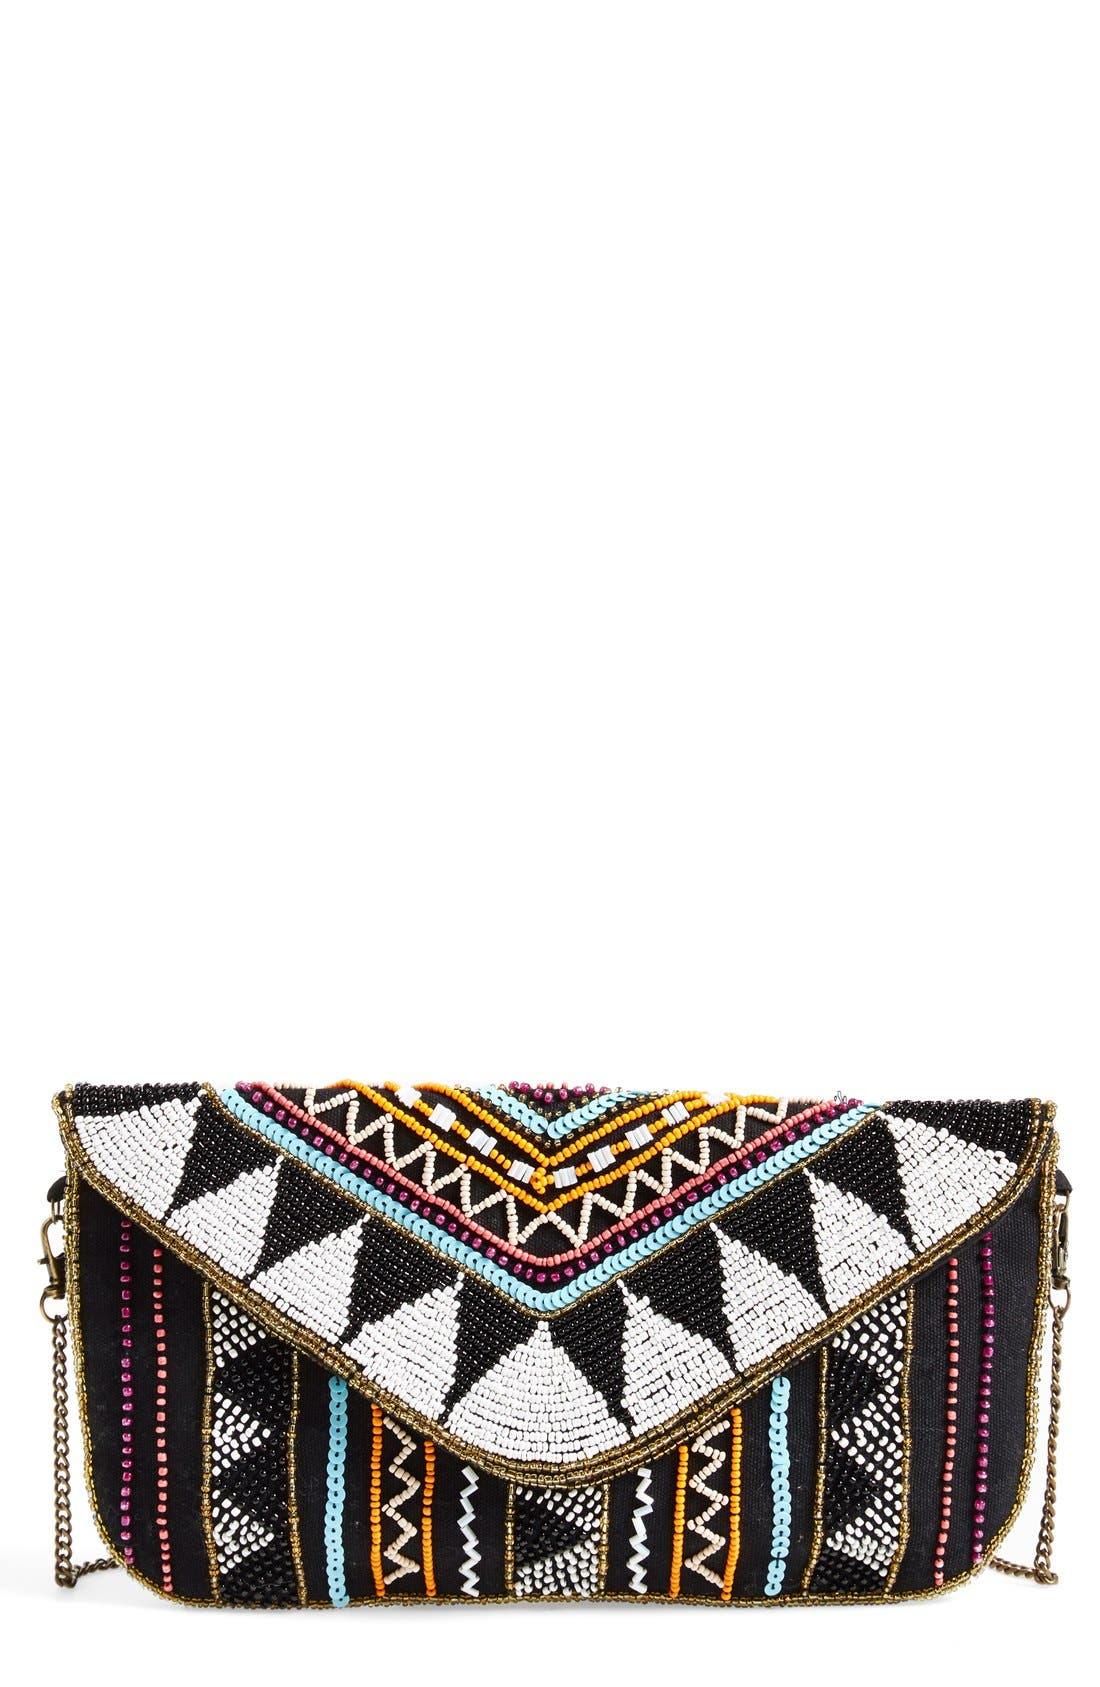 Main Image - Street Level Beaded Crossbody Bag